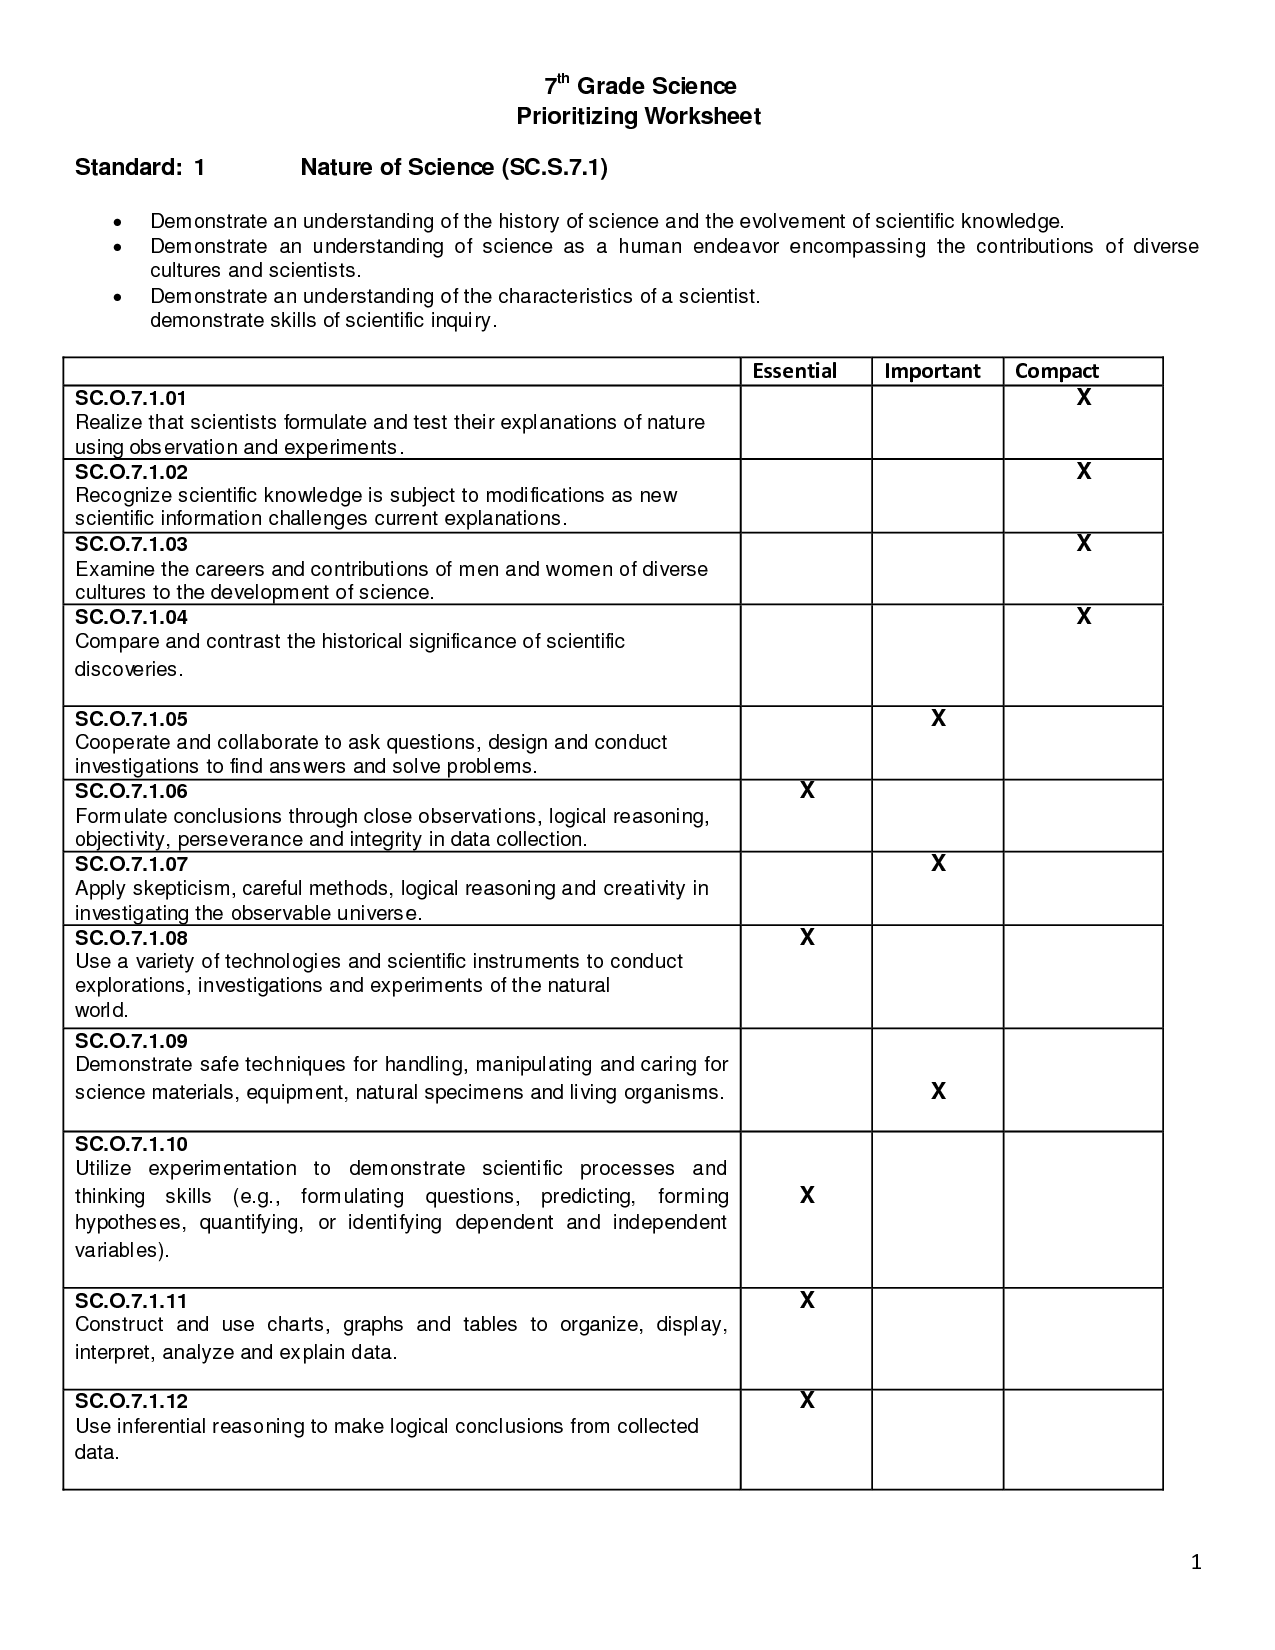 Handwriting Worksheet For 7th Grade